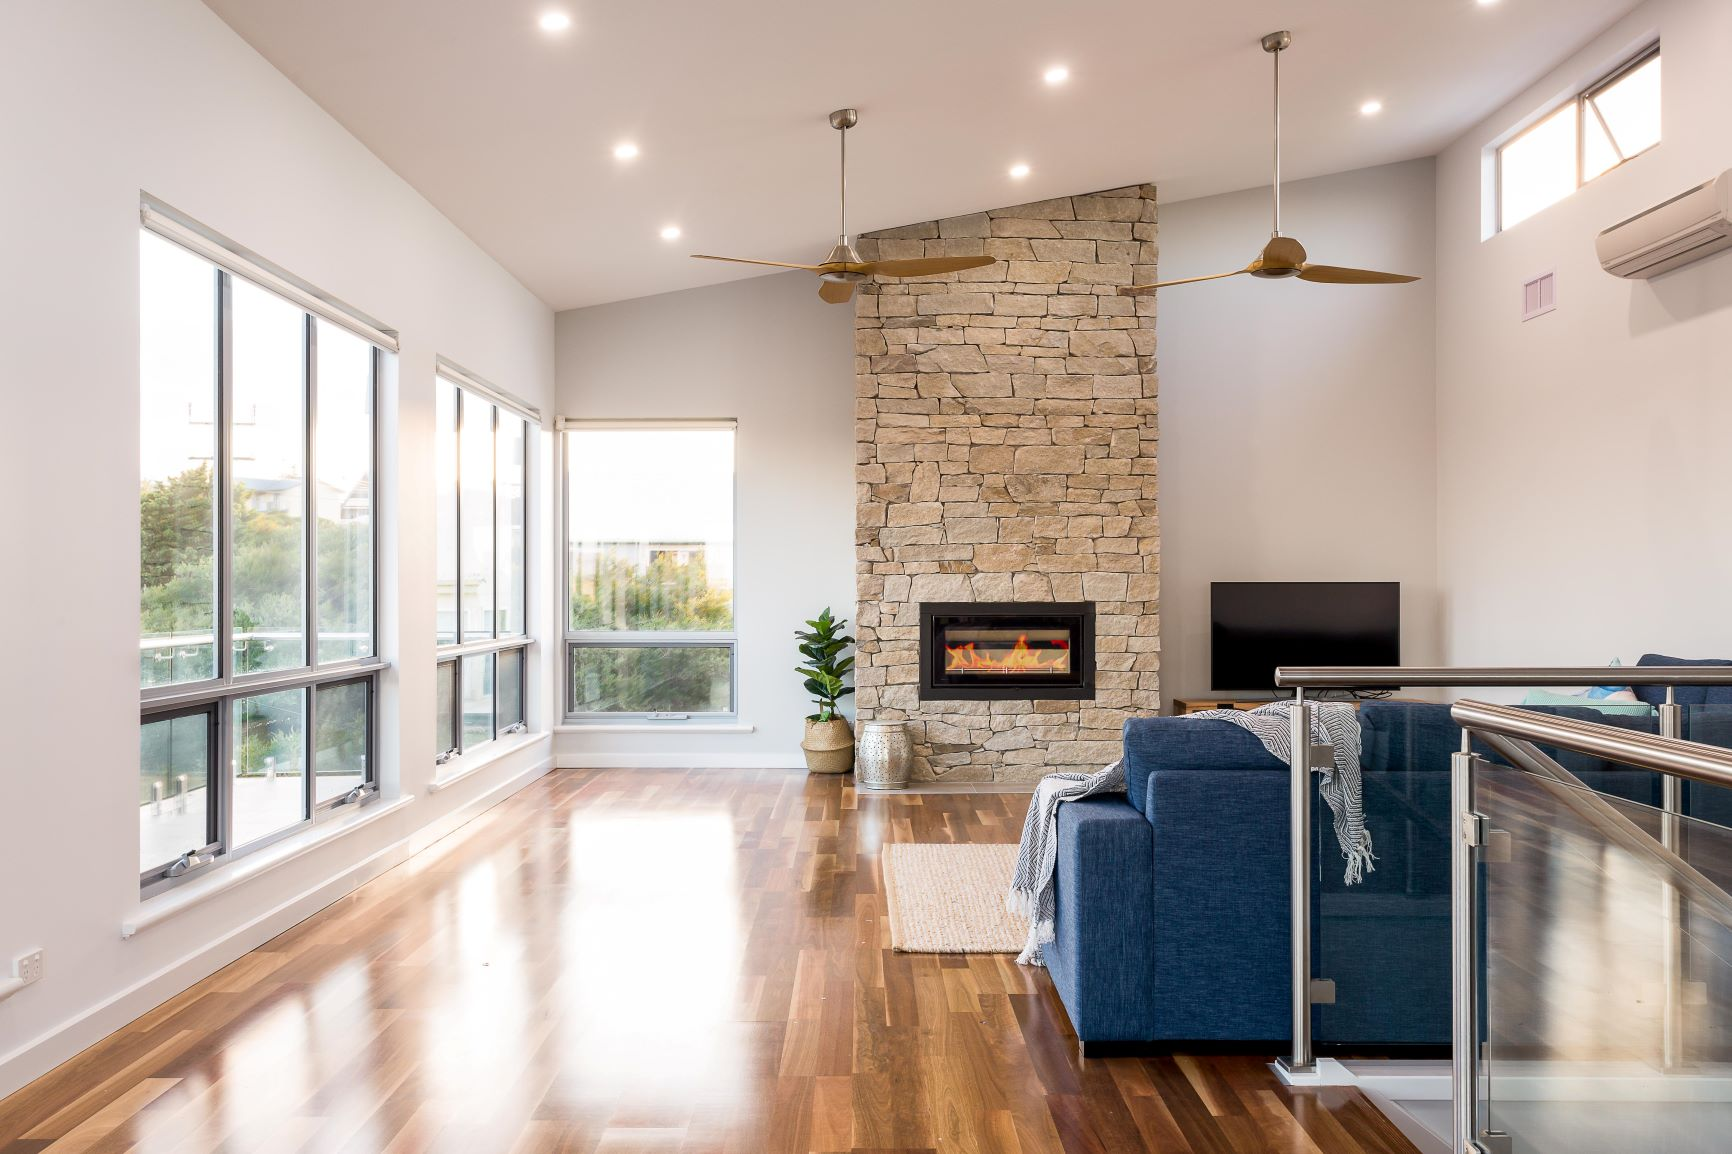 Award Winning, Custom Home, New Home, Two Storey, Builders, Design, Middleton SA, Fleurieu, Feature Wall, Fireplace, Laminated Flooring